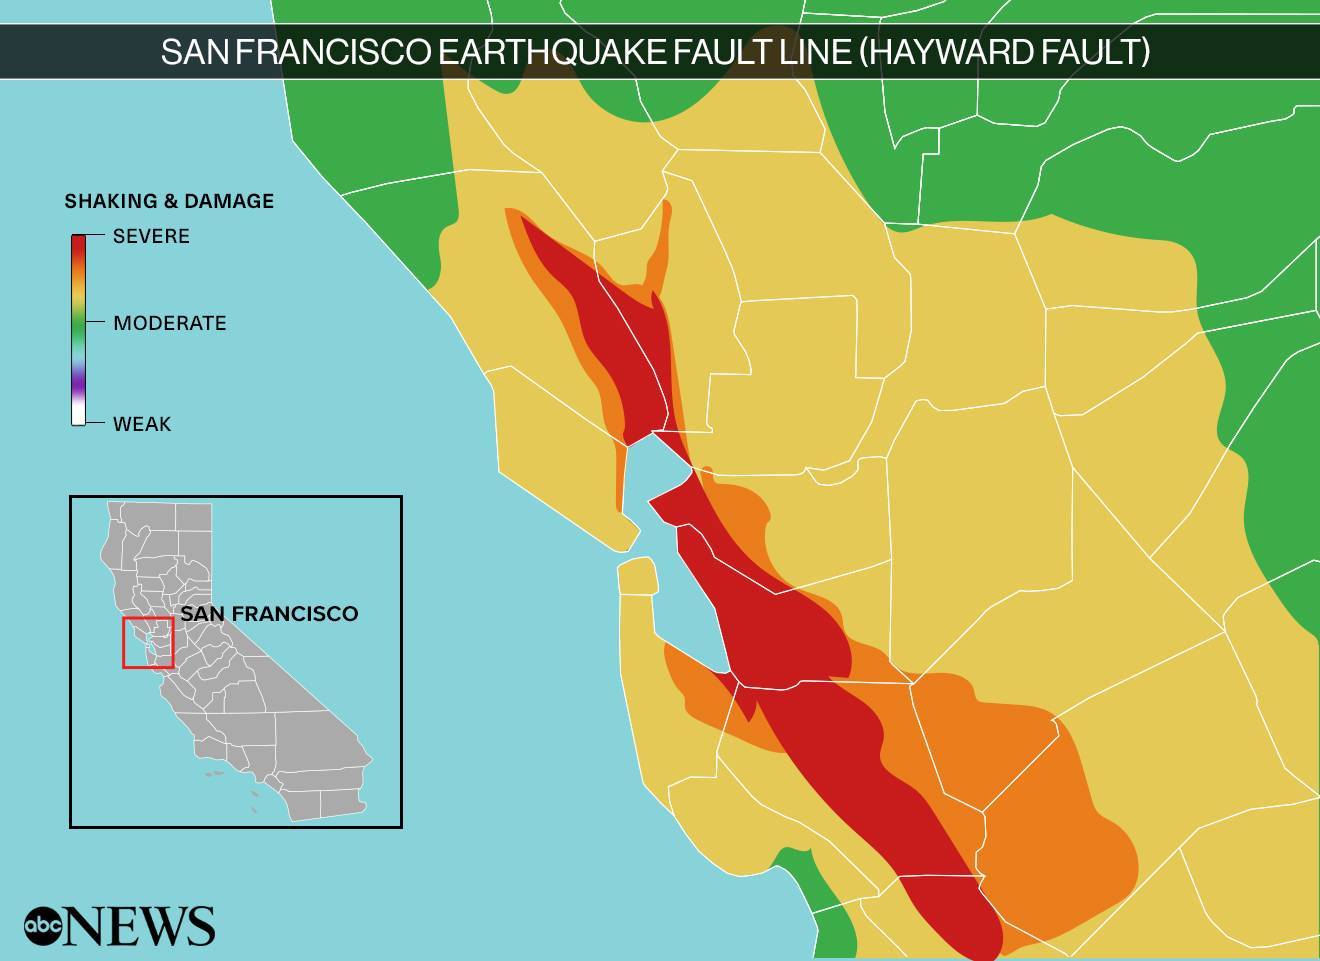 Bay Area Earthquake Could Lead To Massive Loss Of Life And Property